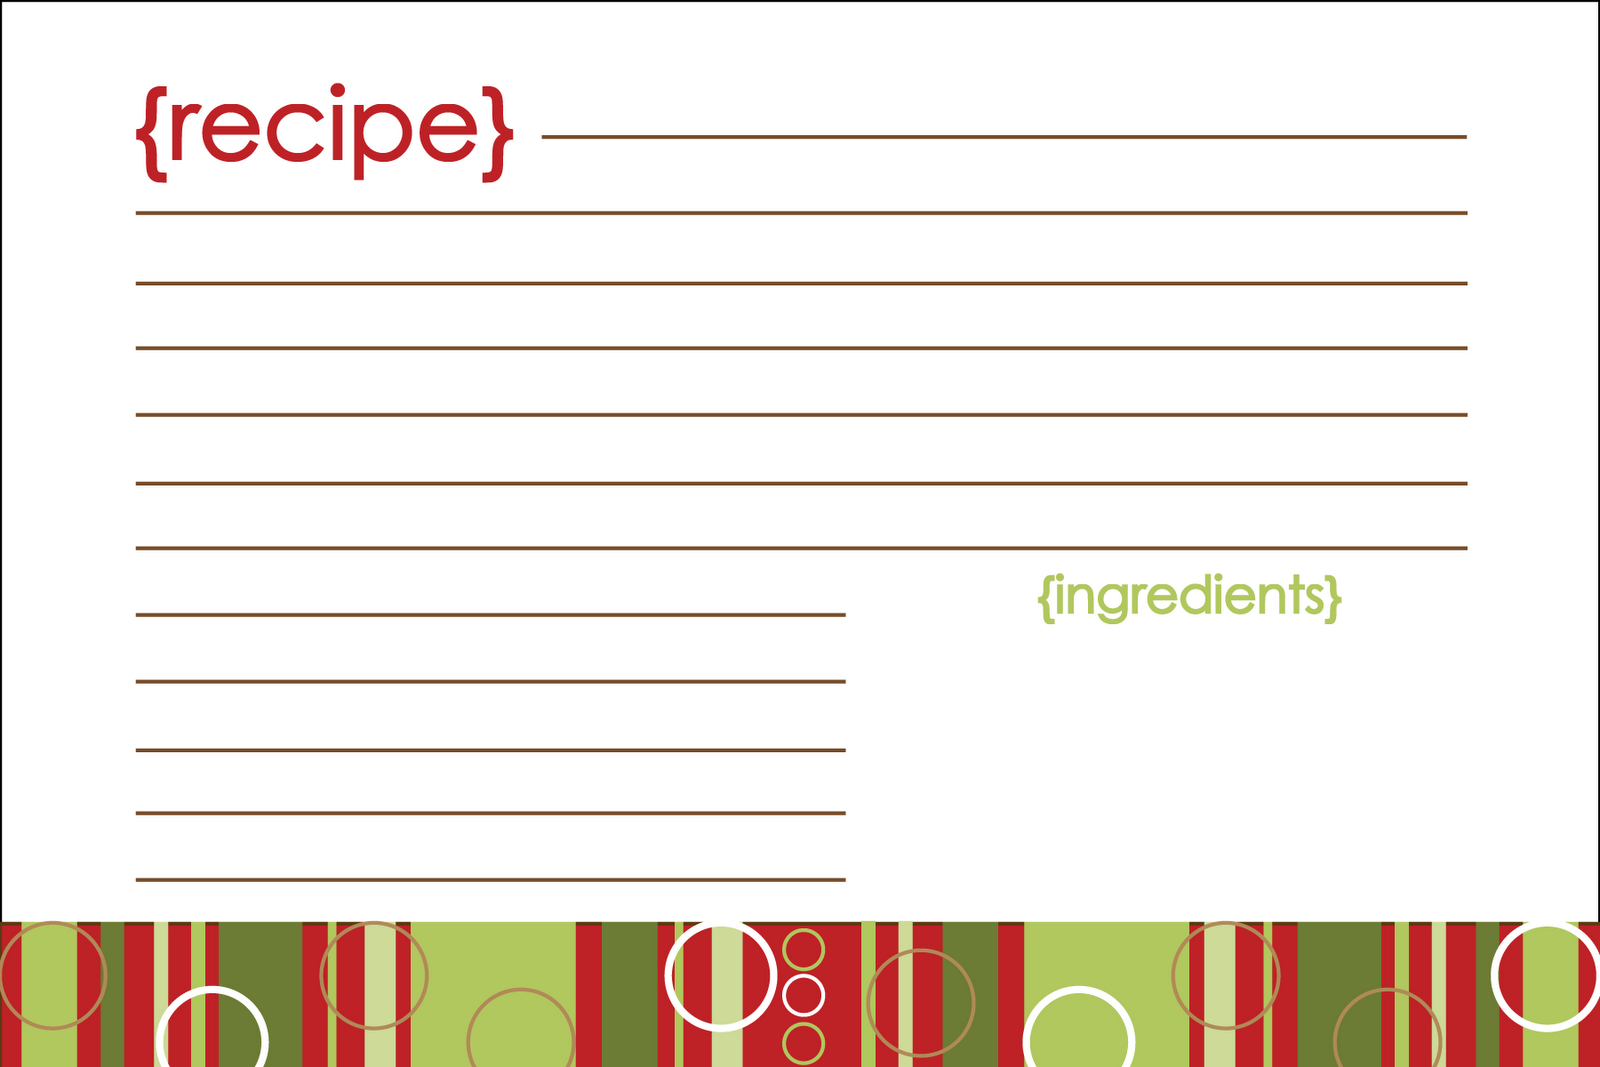 It's just a photo of Smart Printable Recipe Card